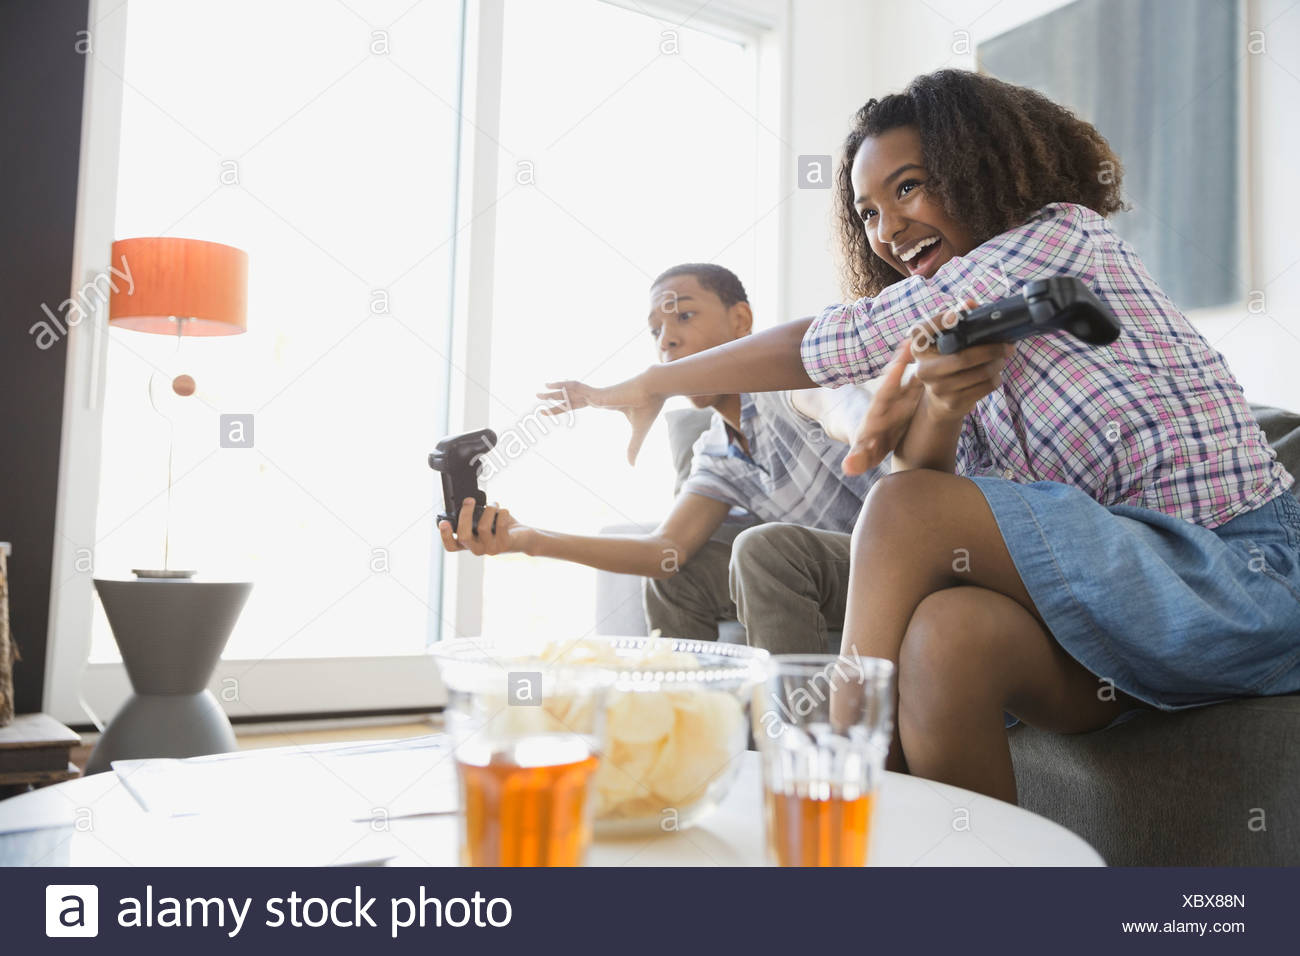 Siblings playing video games at home - Stock Image